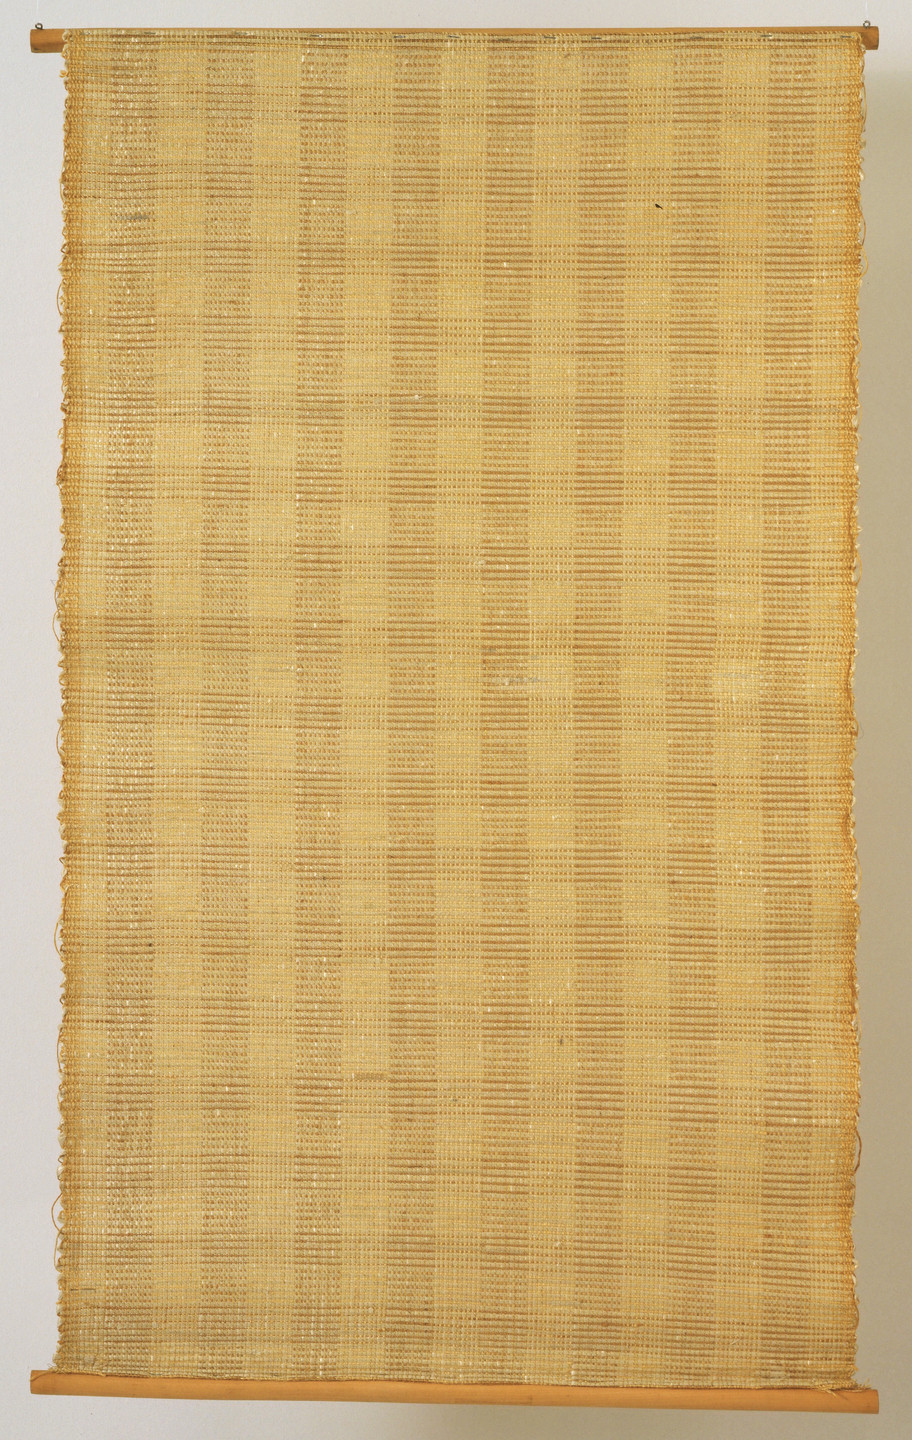 Anni Albers. Free-Hanging Room Divider. c. 1949